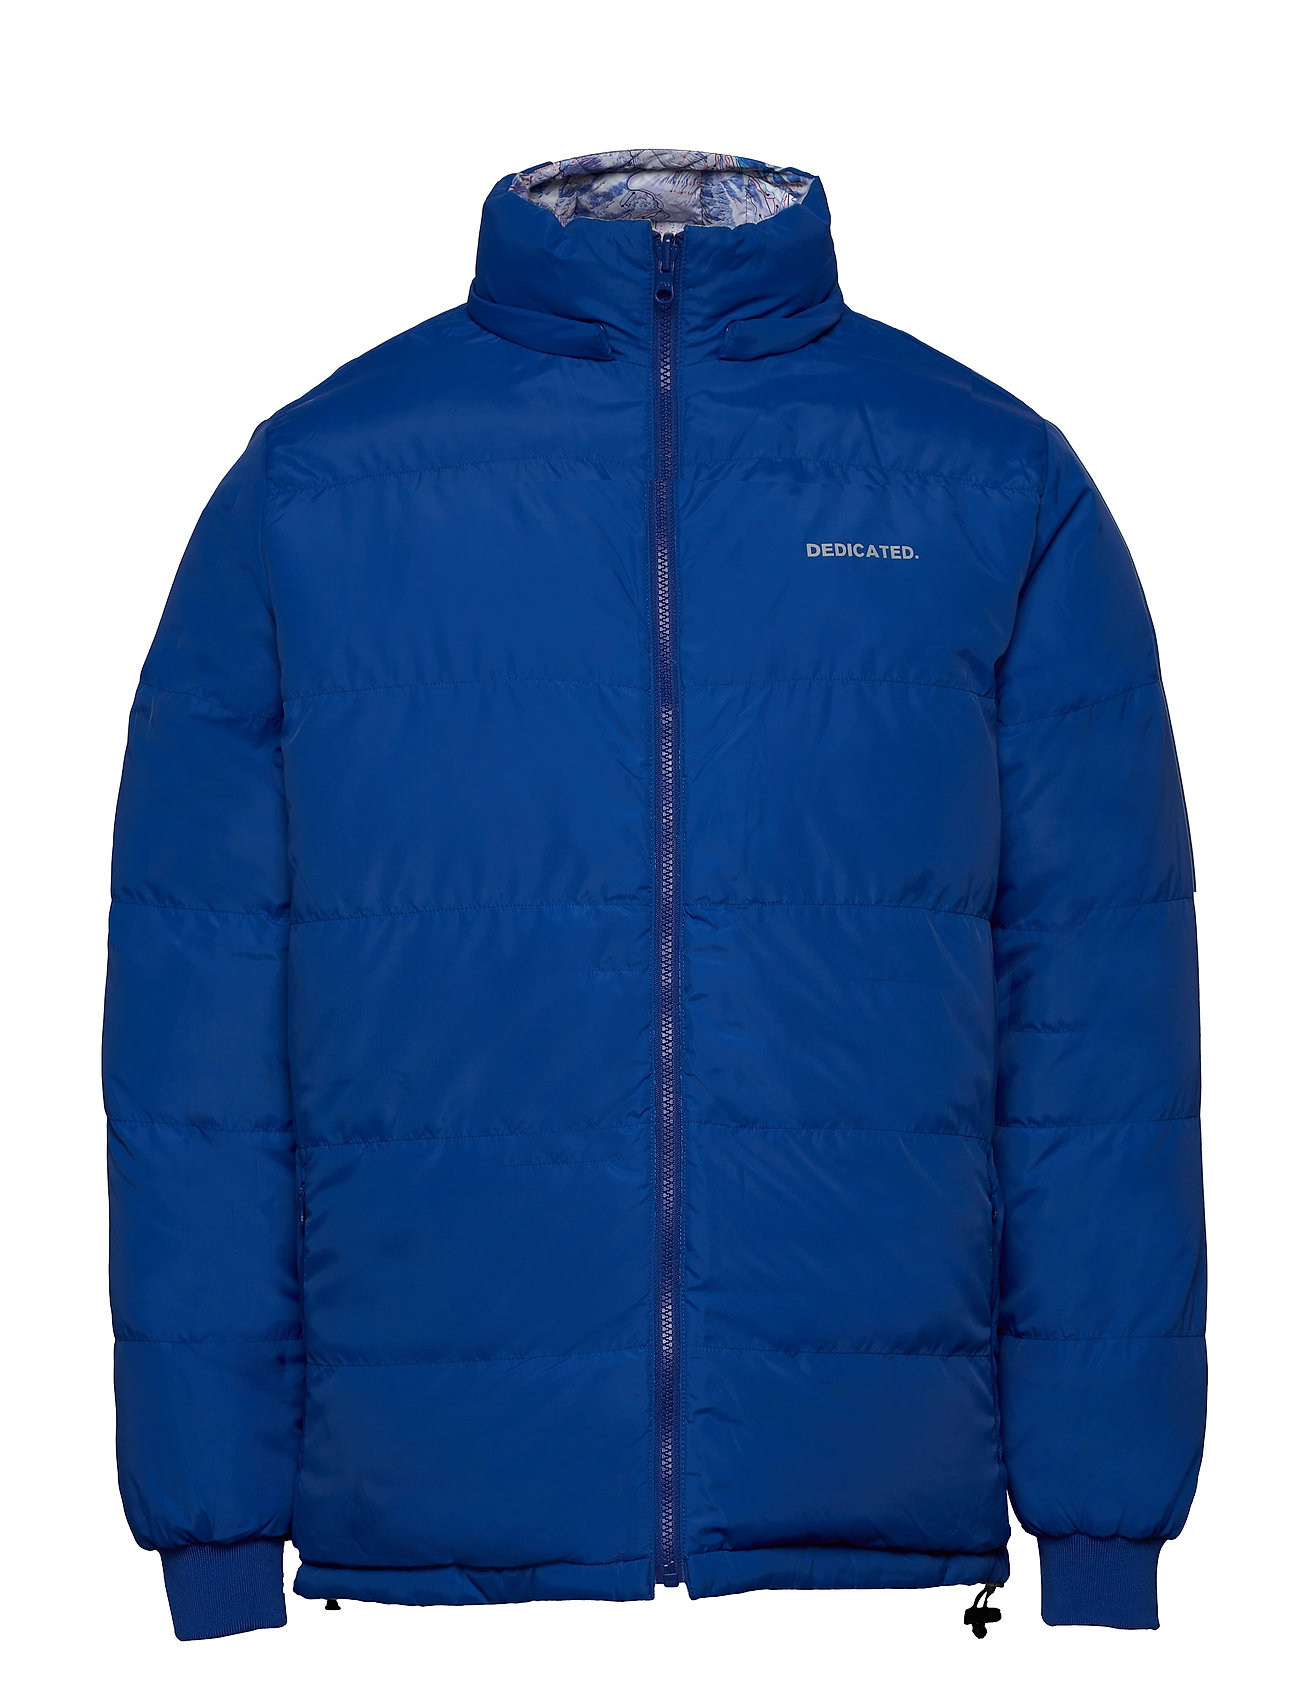 DEDICATED Puffer Jacket Dundret Ski Area - Jakker og frakker MULTI COLOR - Menn Klær